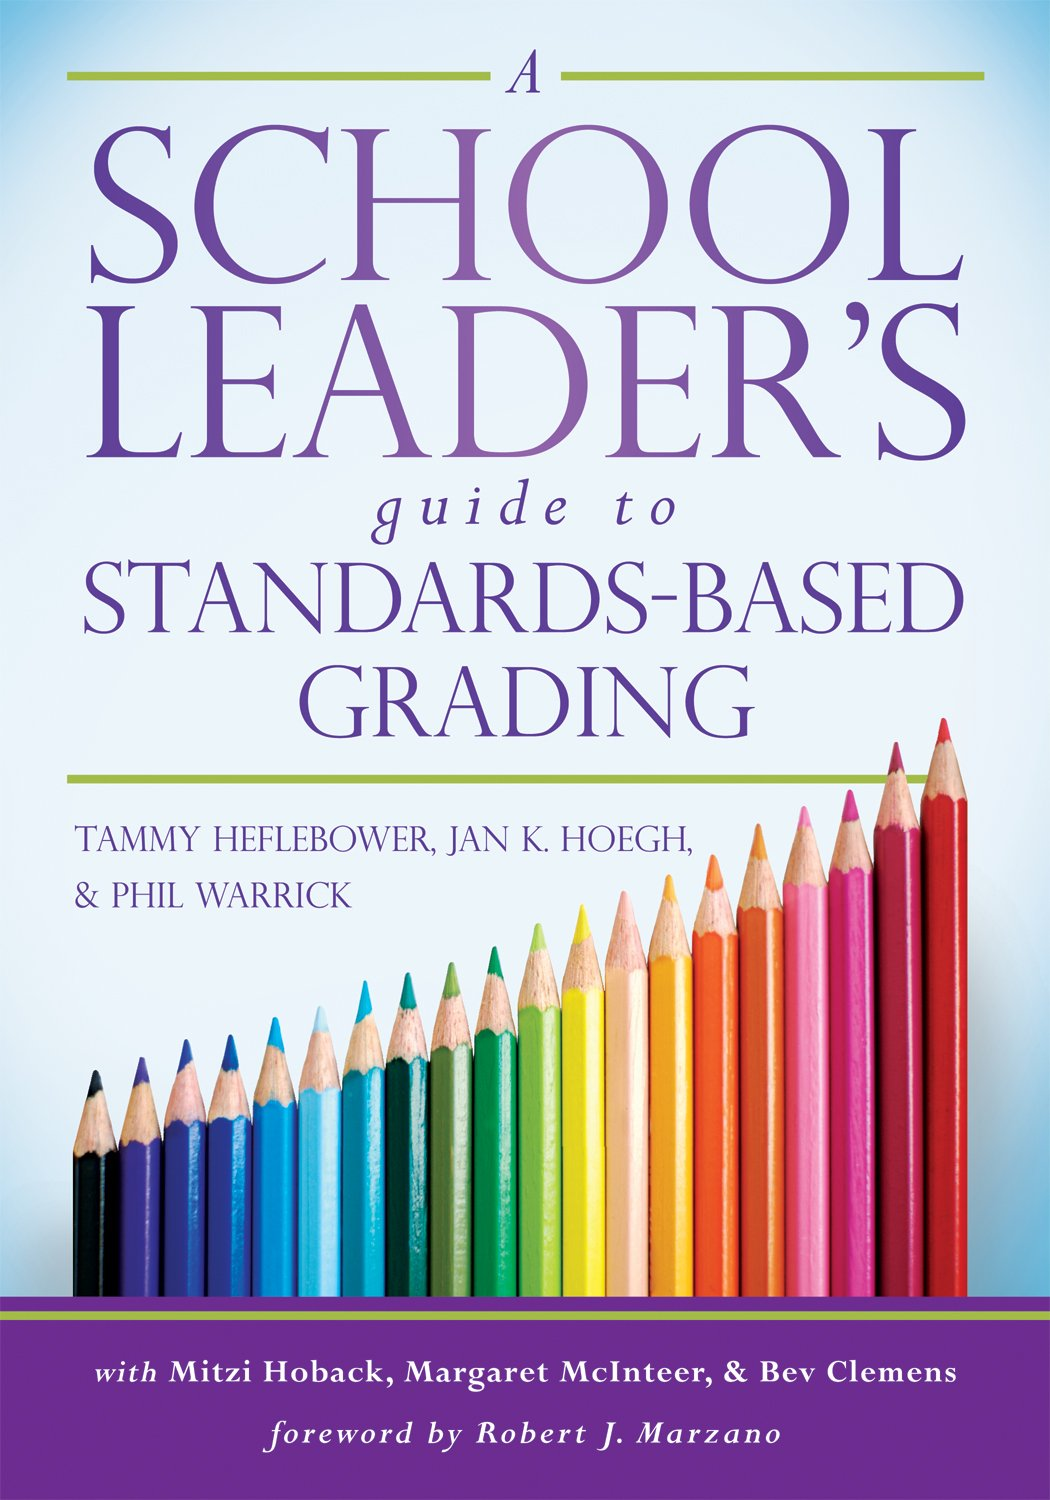 a school leader s guide to standards based grading tammy heflebower